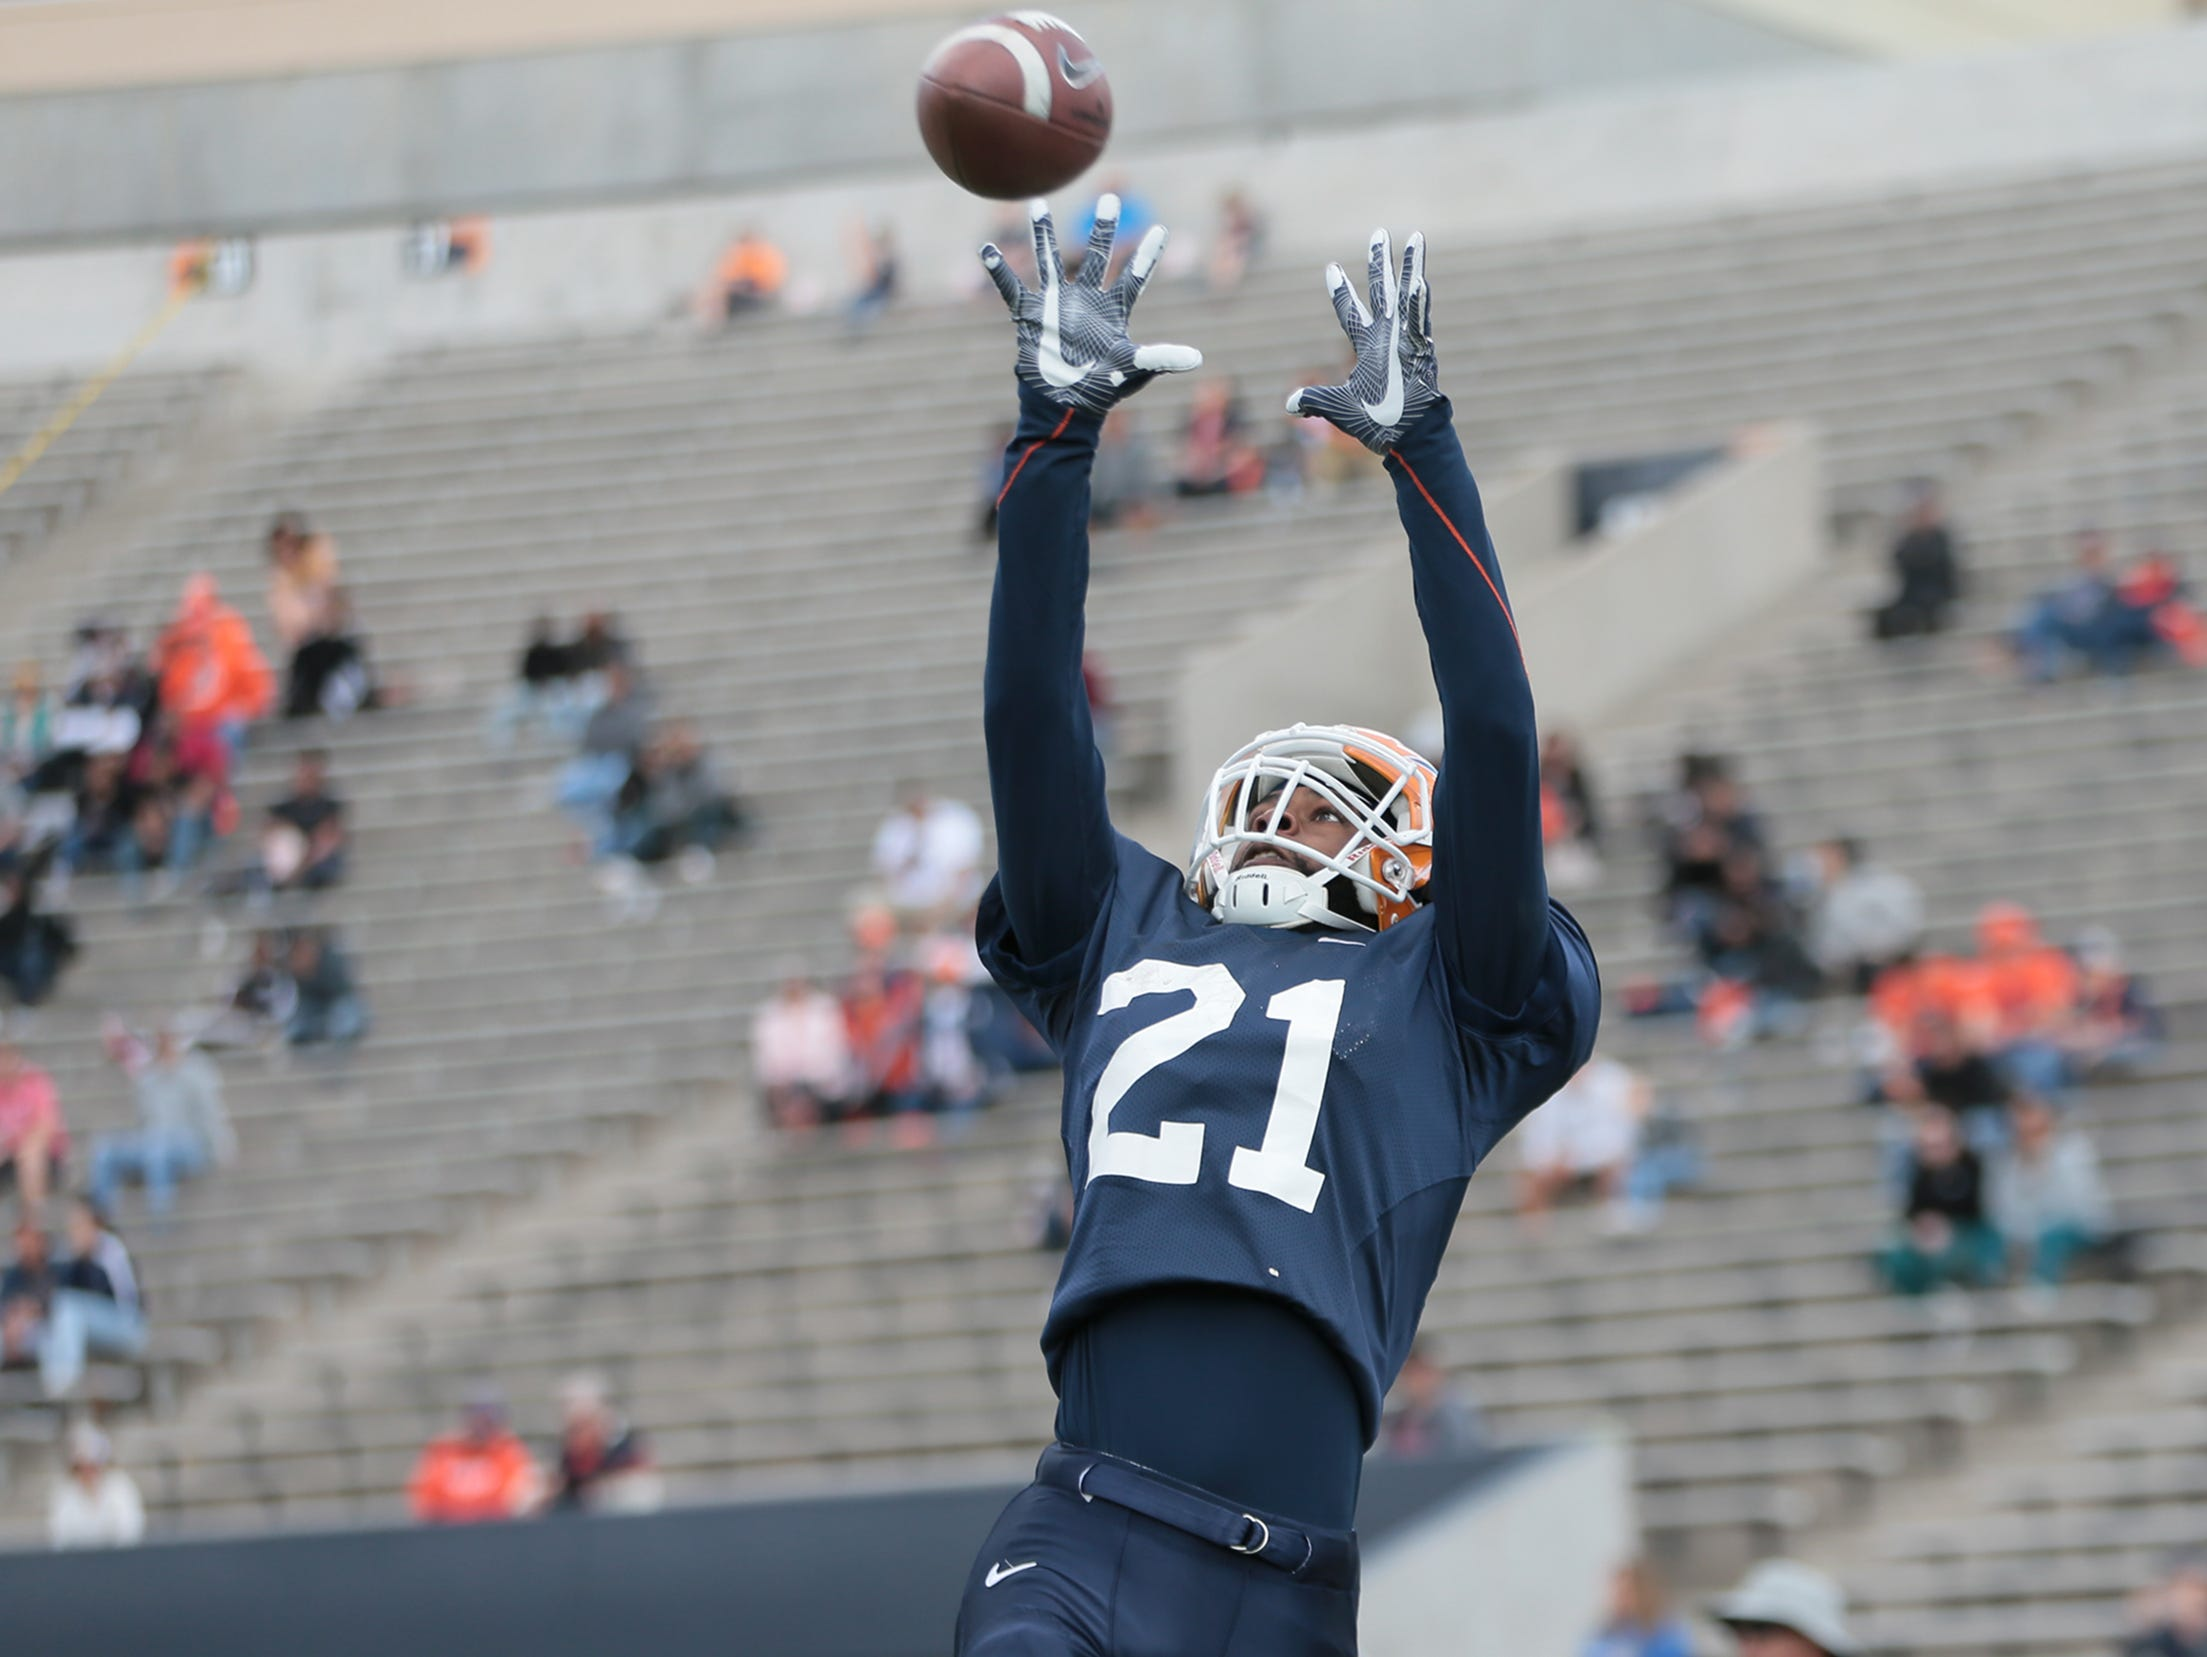 The UTEP Miners held their final spring practice in front of fans Saturday, April 13, 2019, at Sun Bowl Stadium.